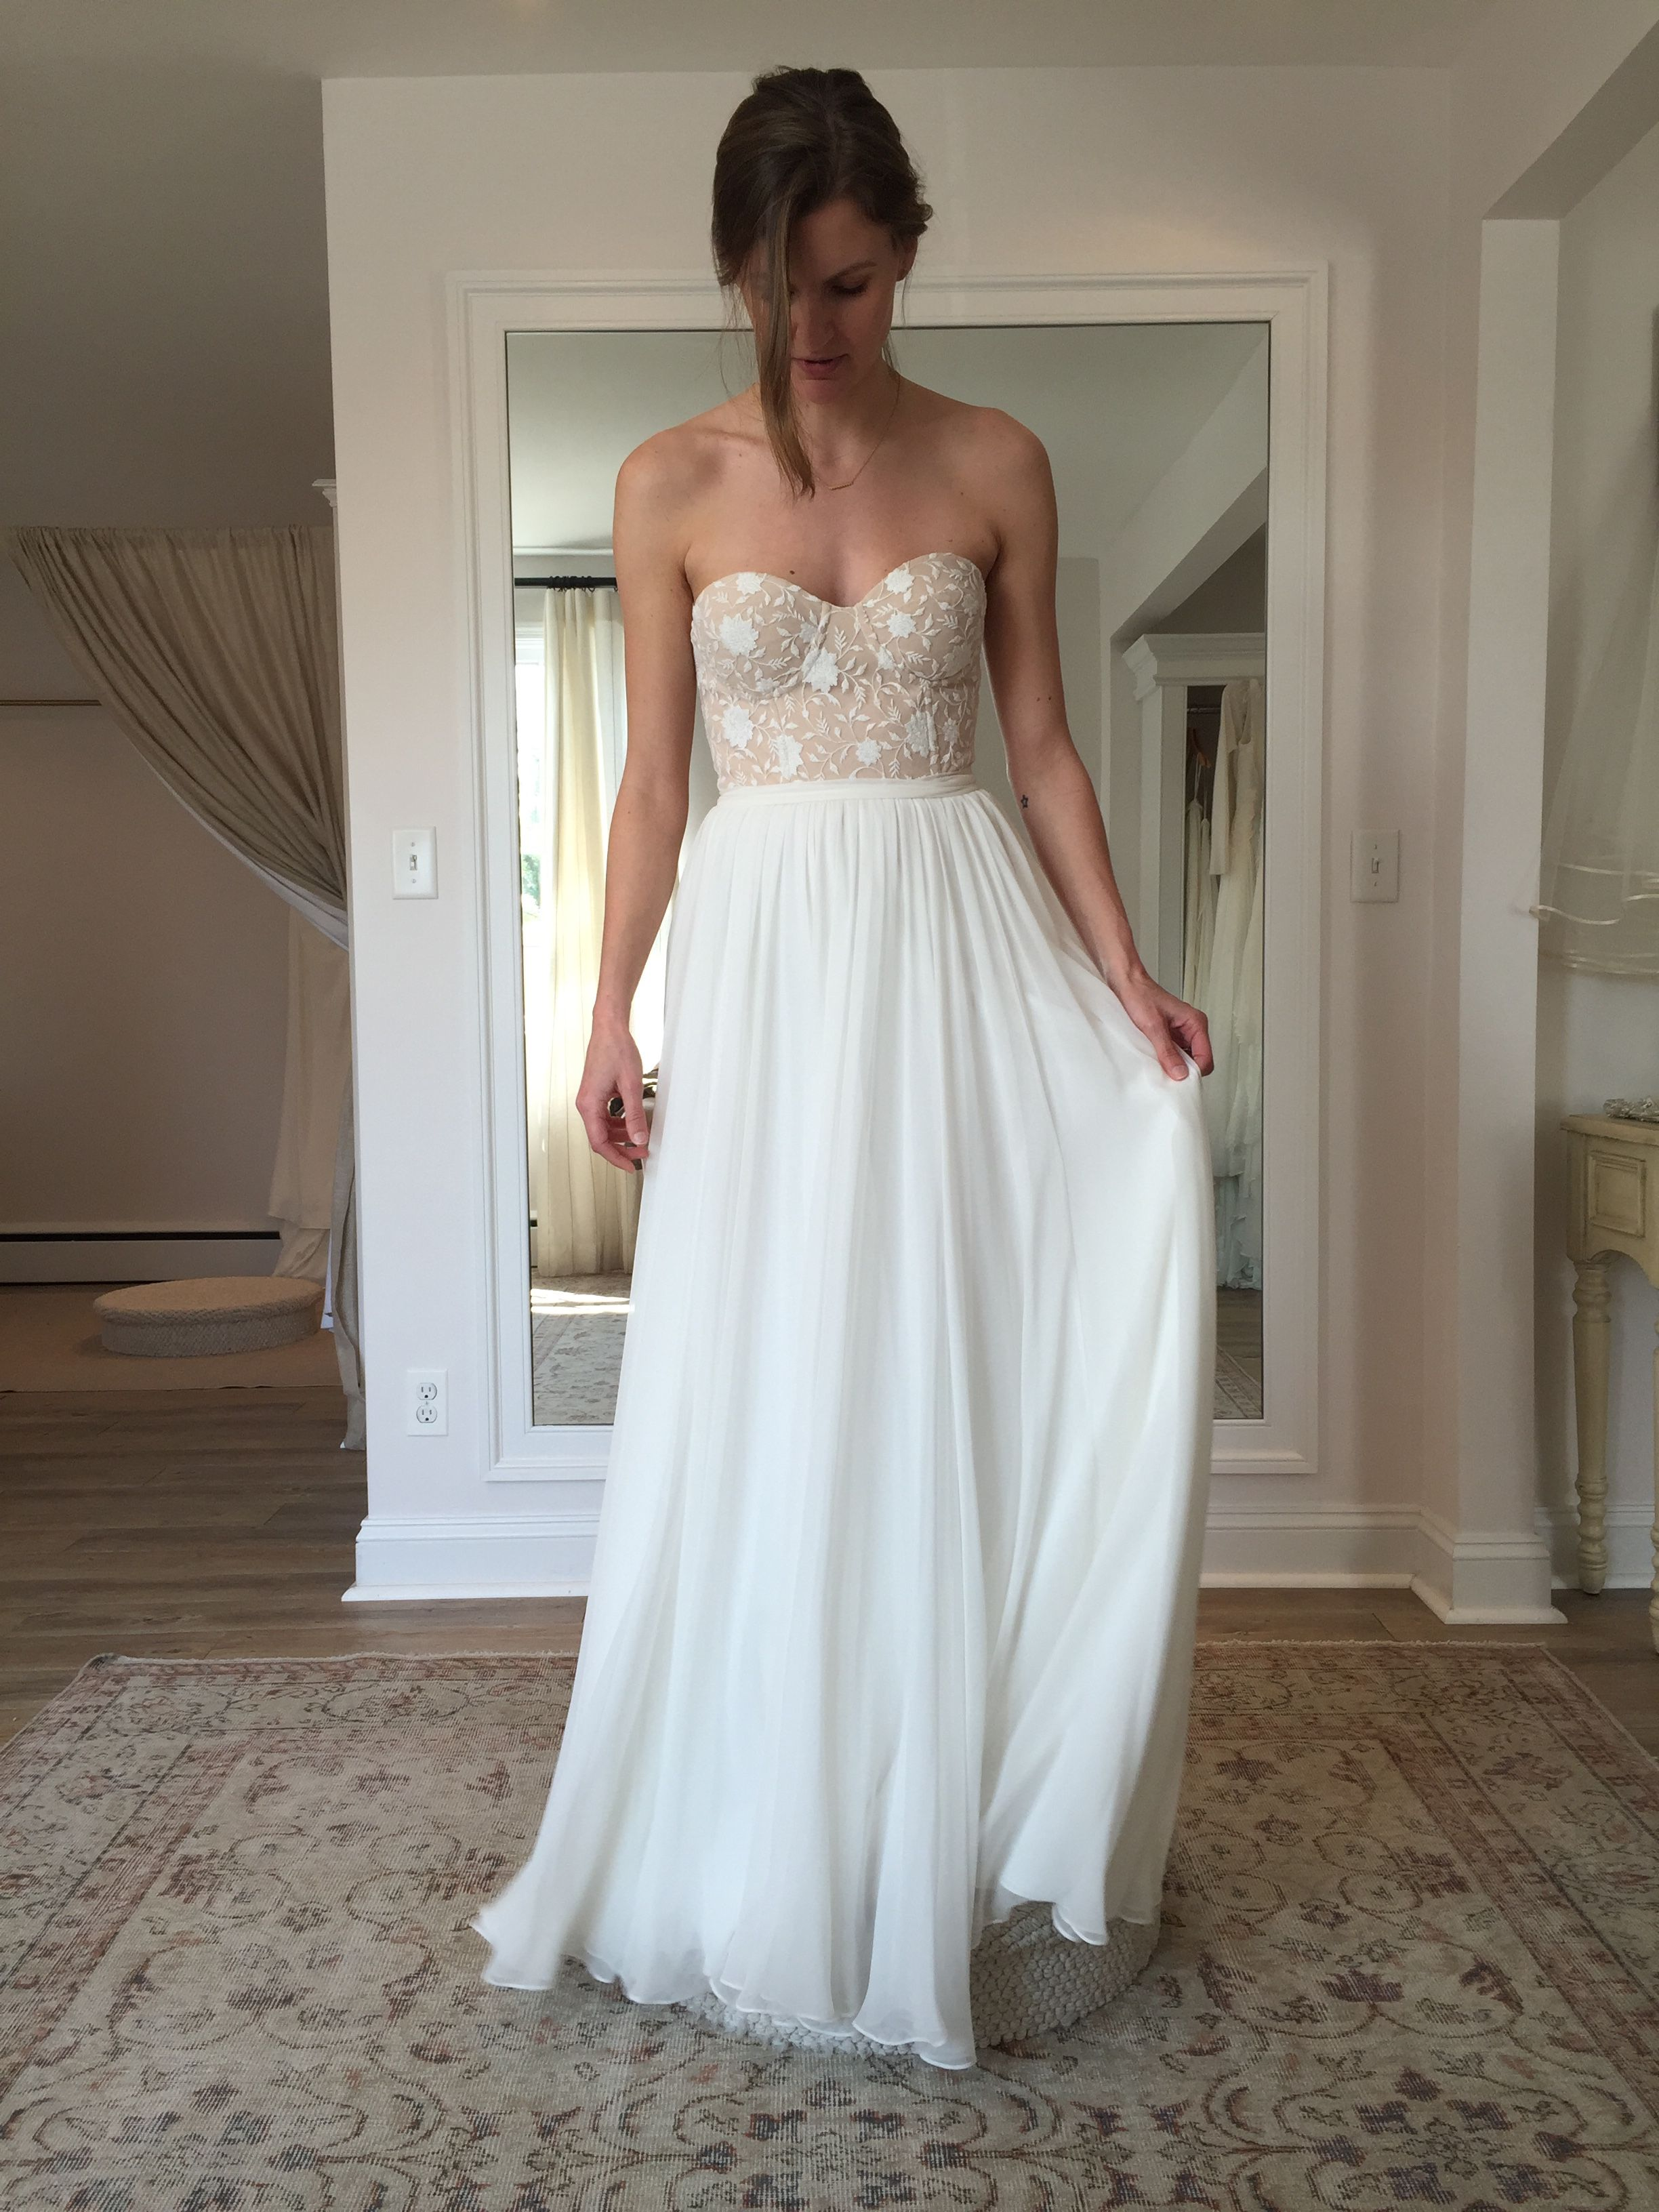 Tatyana Merenyuk Kayla Size 2 Wedding Dress Wedding Dress Wedding